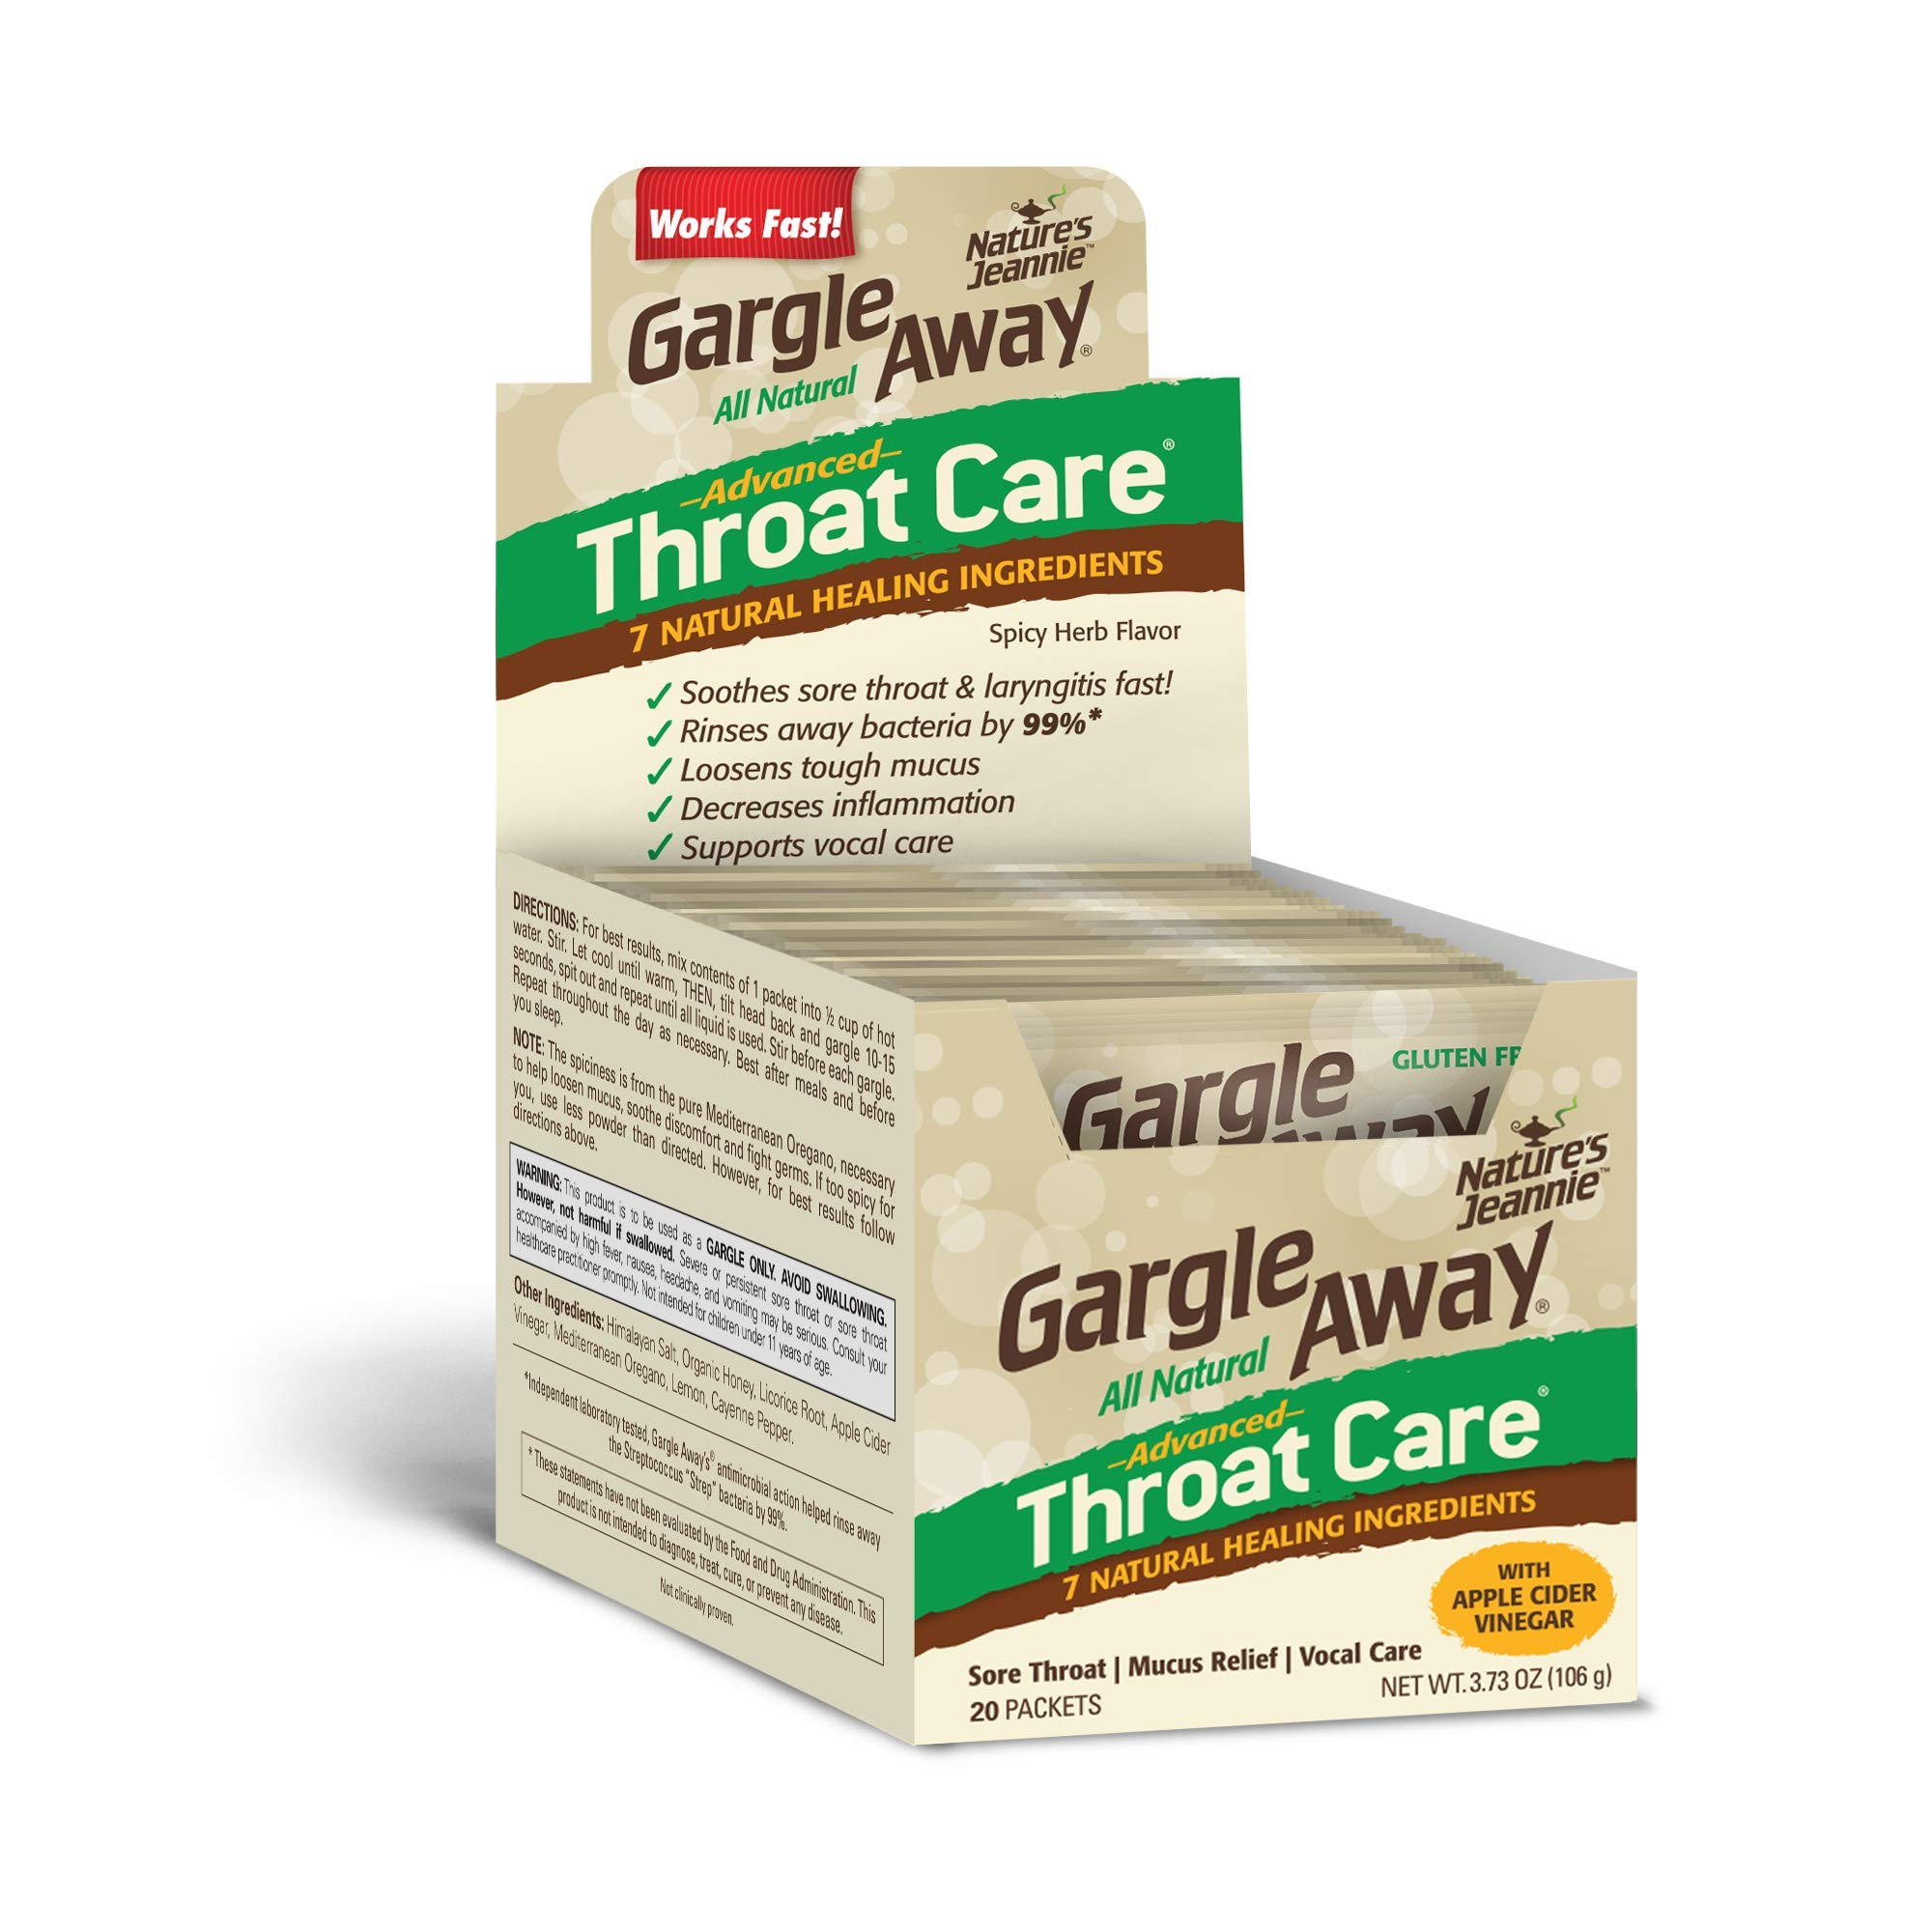 Gargle Away by Nature's Jeannie - Natural Sore Throat Remedy, Vocal Care, Mucus Relief, Cough Suppressant for Kids and Adults (20-Pack, Powder)